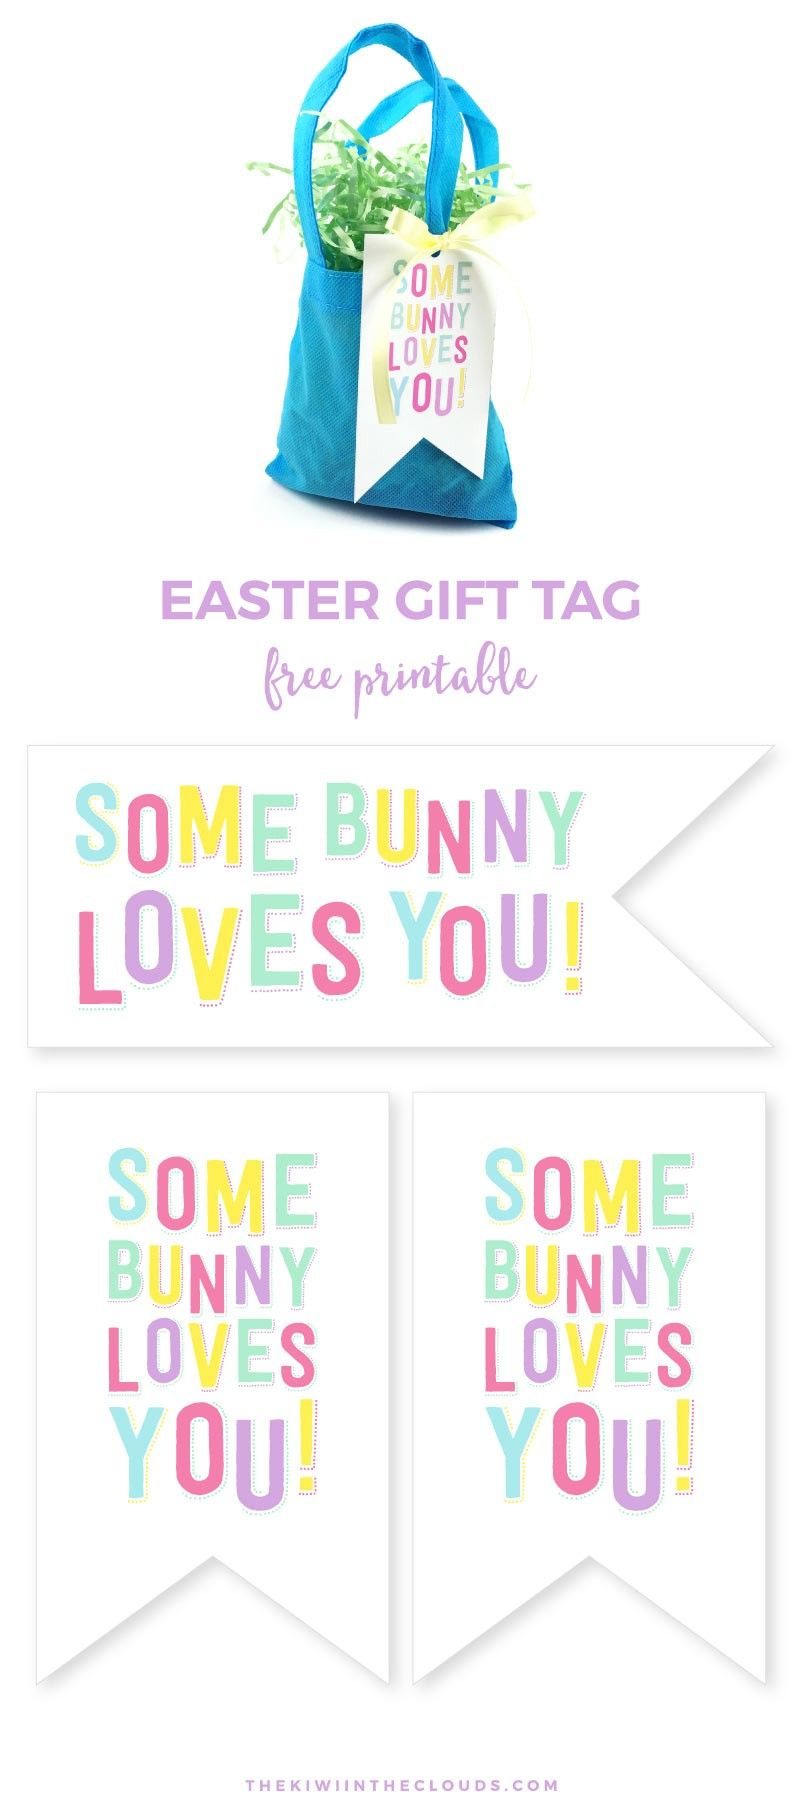 Somebunny loves you free printable easter tag easter somebunny loves you free printable easter tag come grab this cute easter gift tag and attach it to your easter gift for an easy pulled together look negle Choice Image